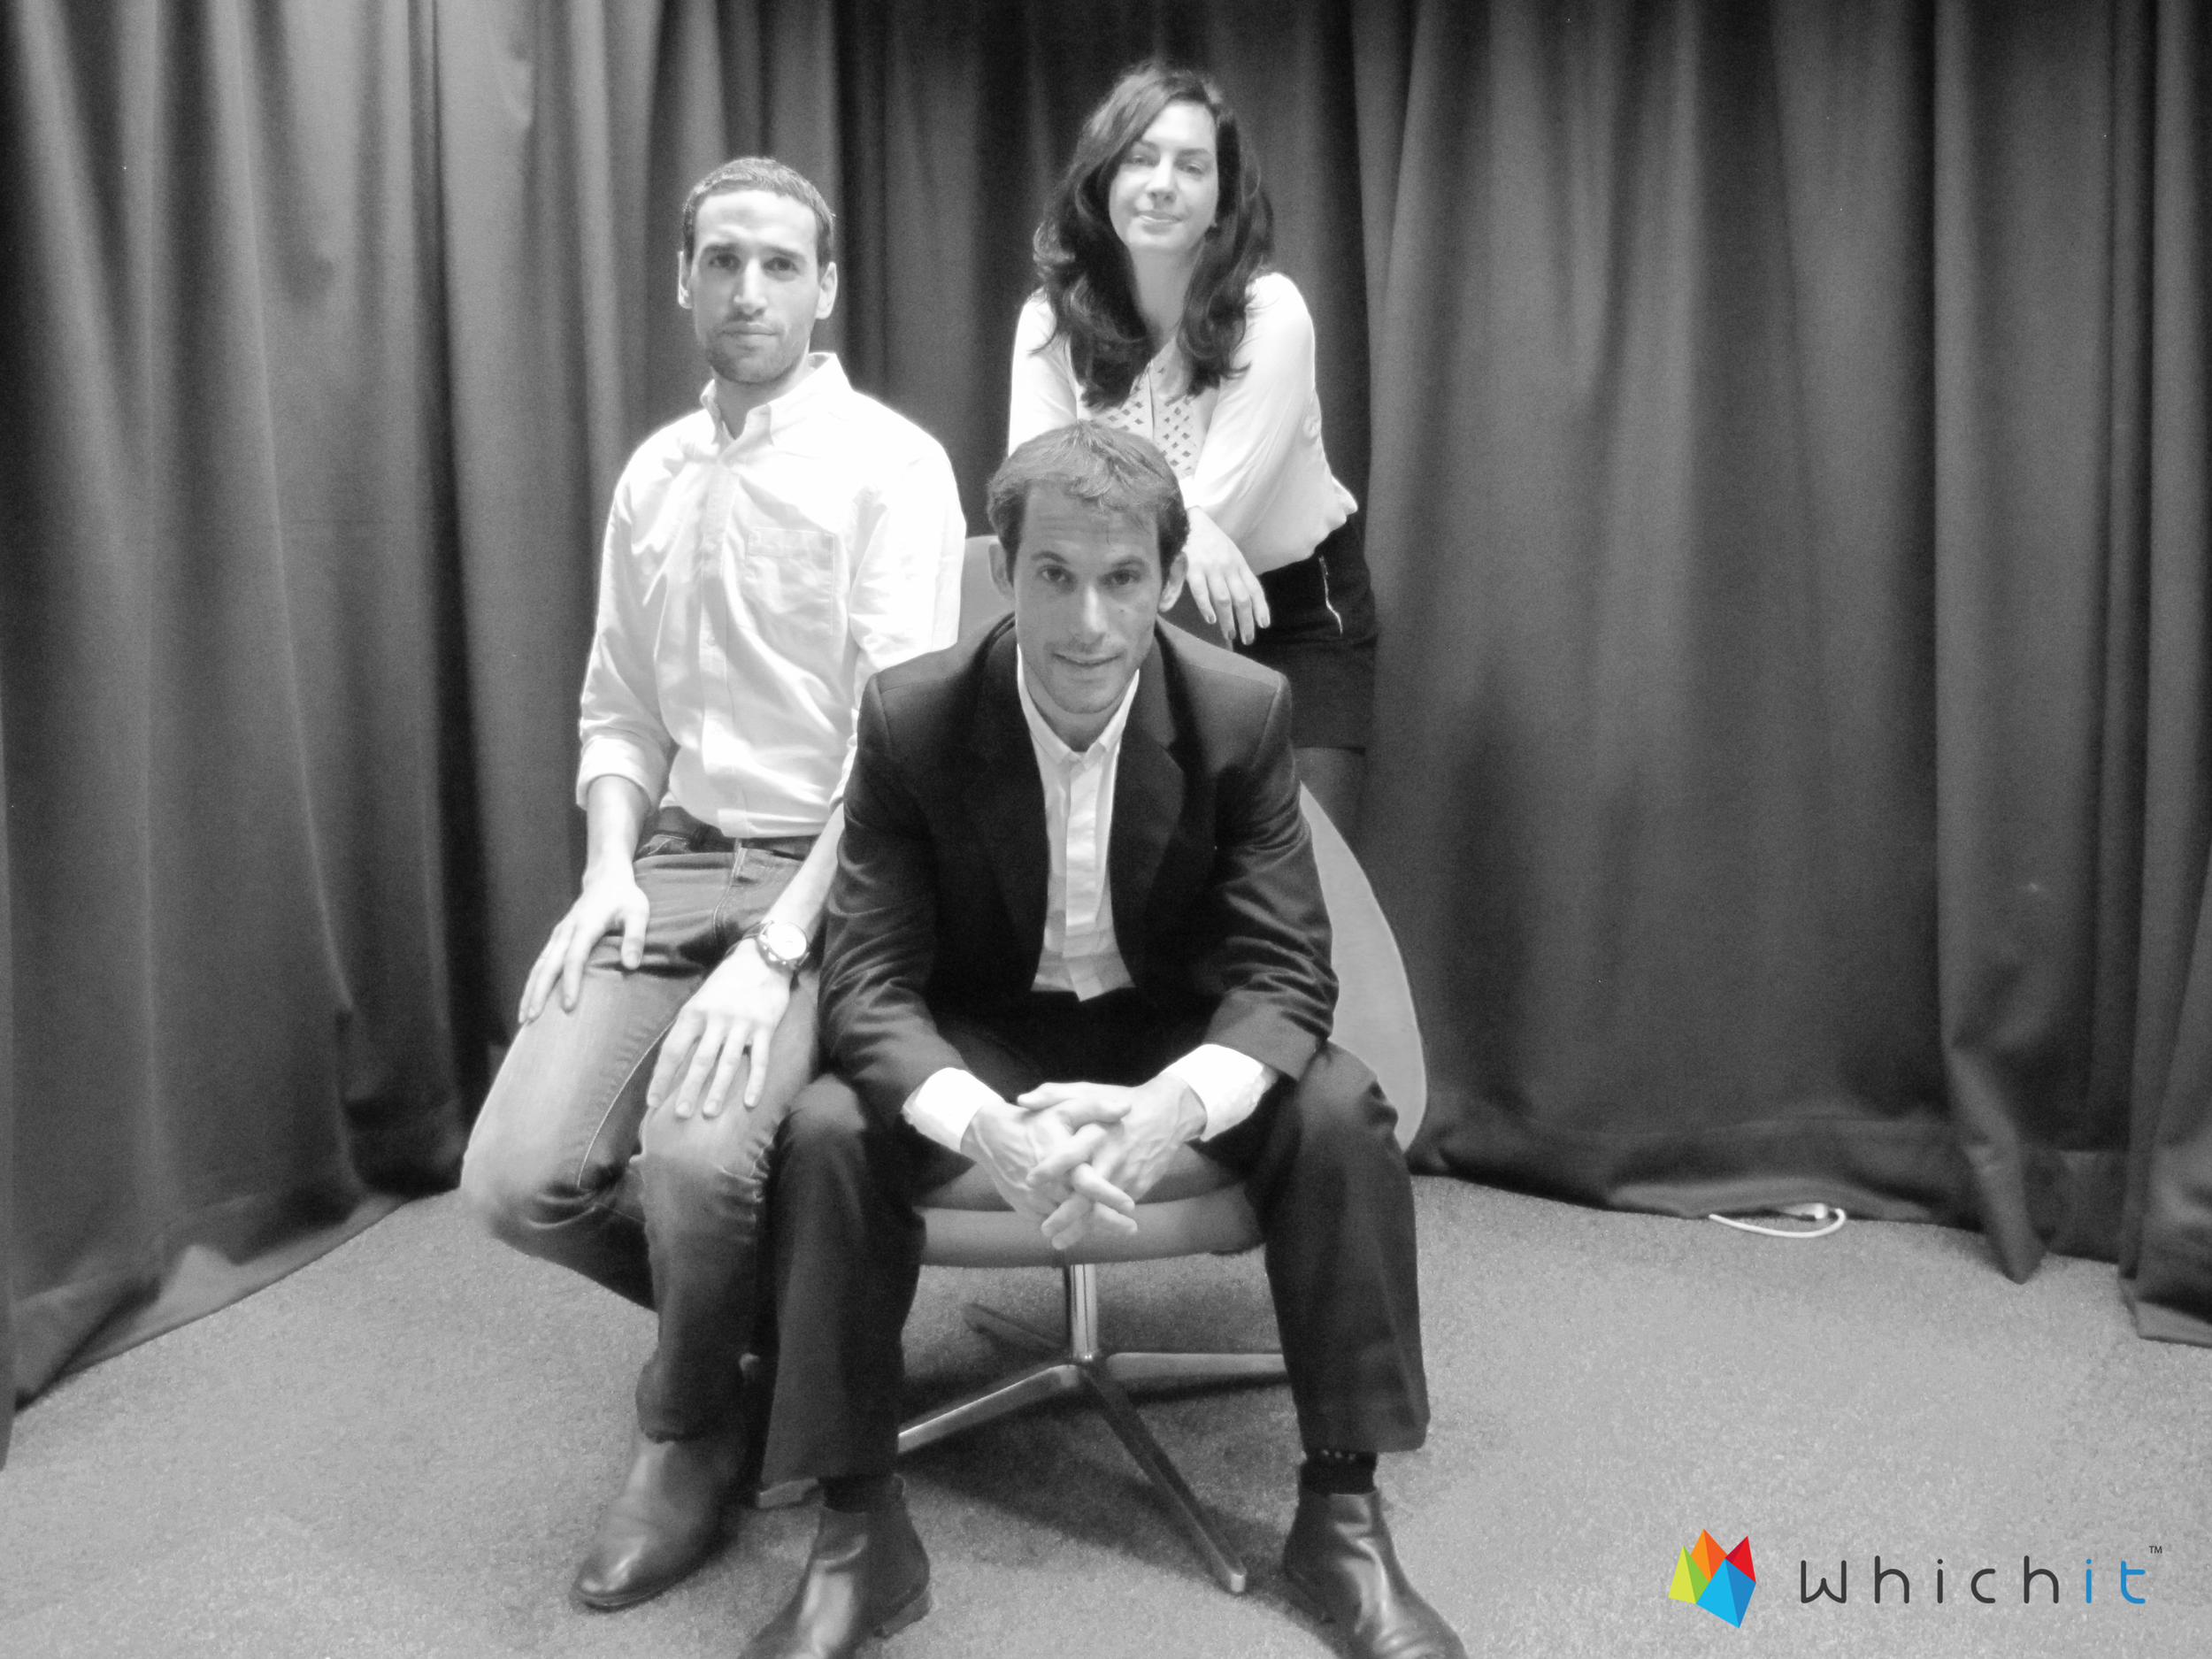 The Founding team: Jonathan, Yarden and Galit